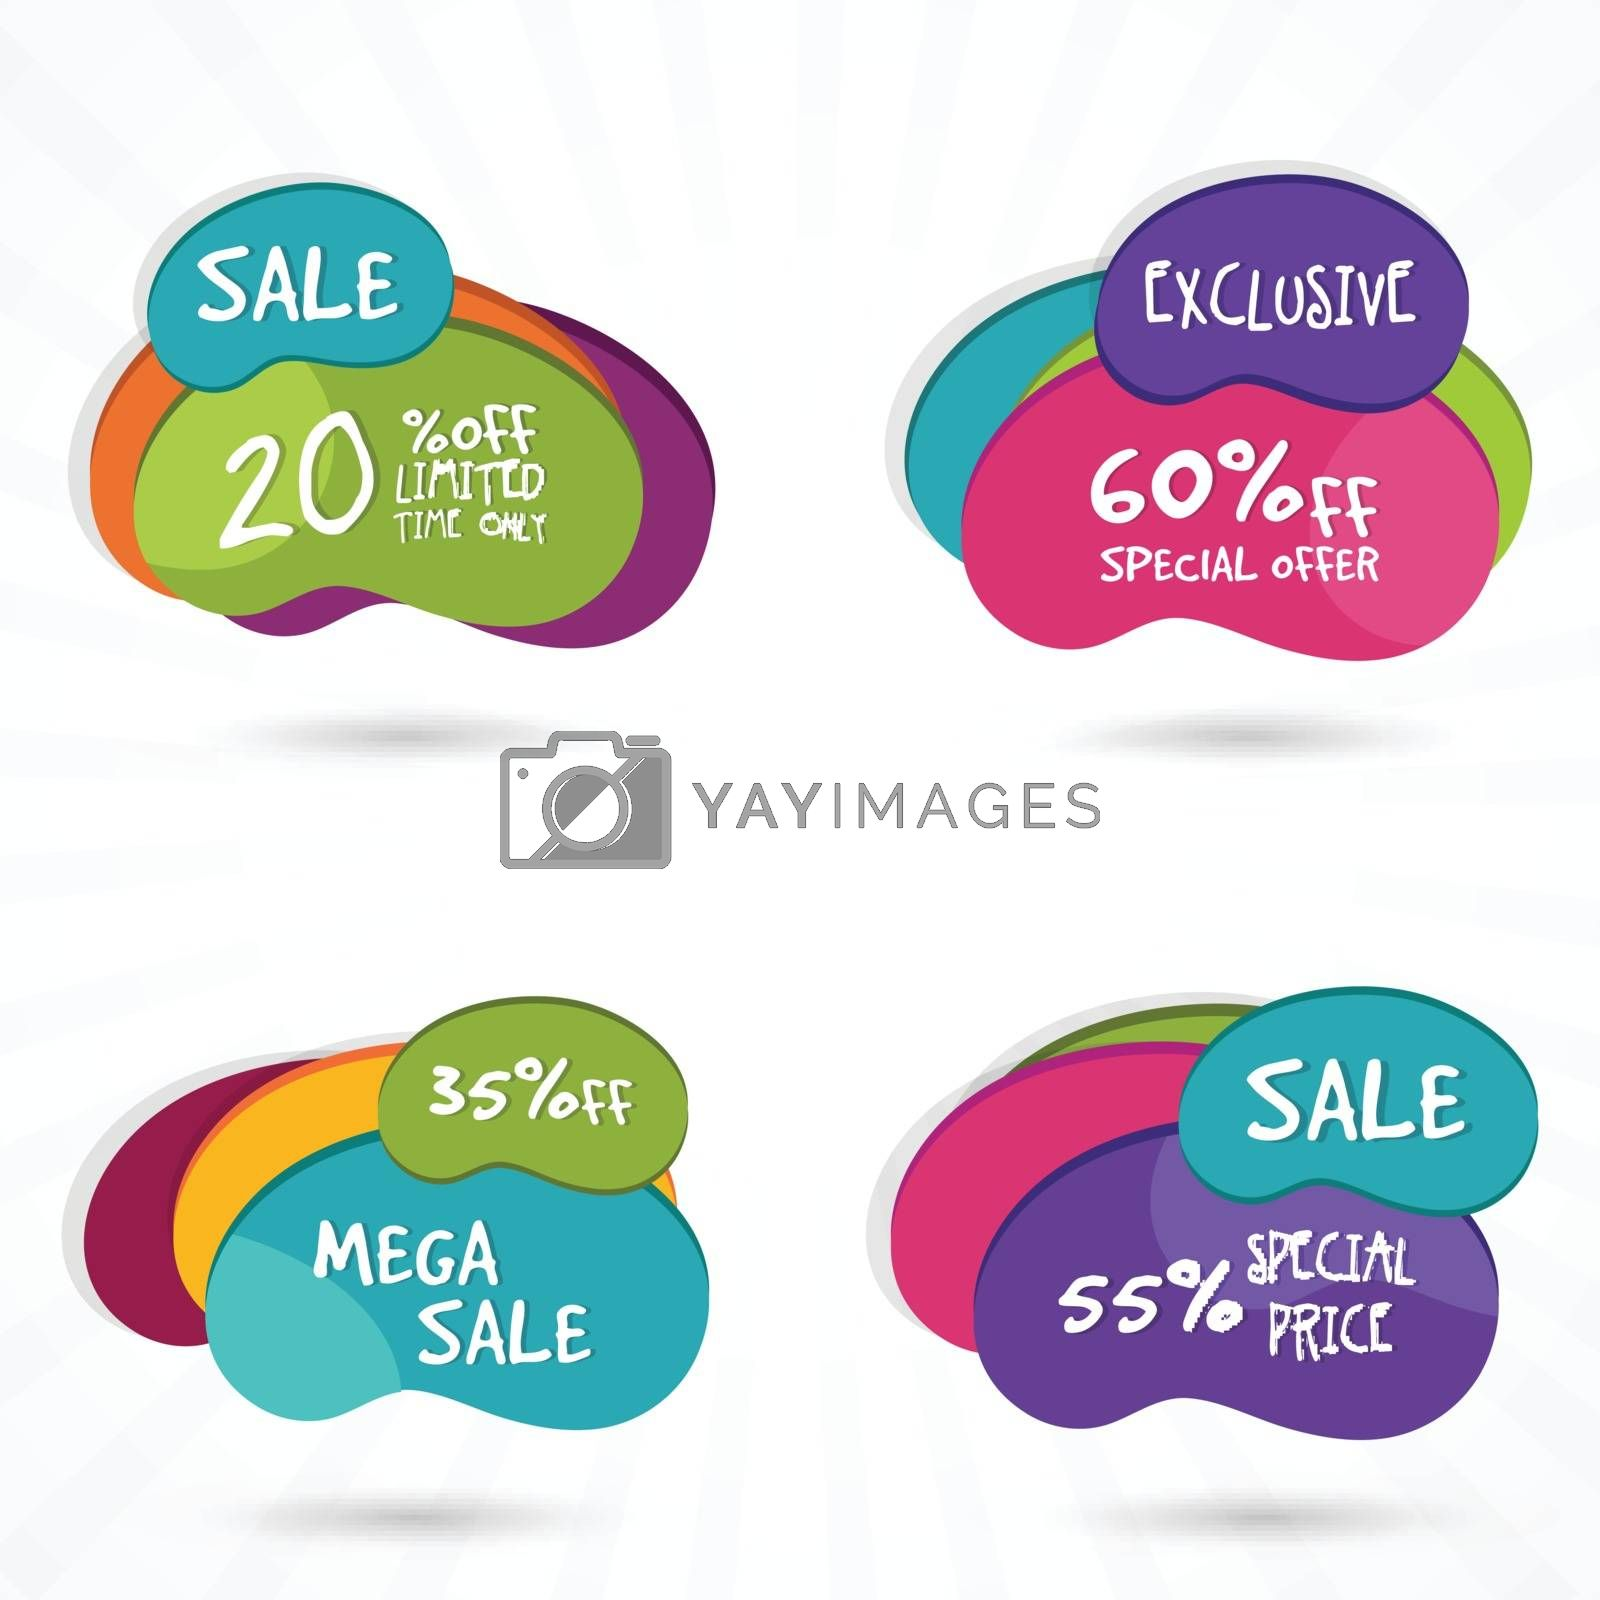 Set of creative colorful Stickers, Tags or Labels with different Discount Offers, Vector illustration.